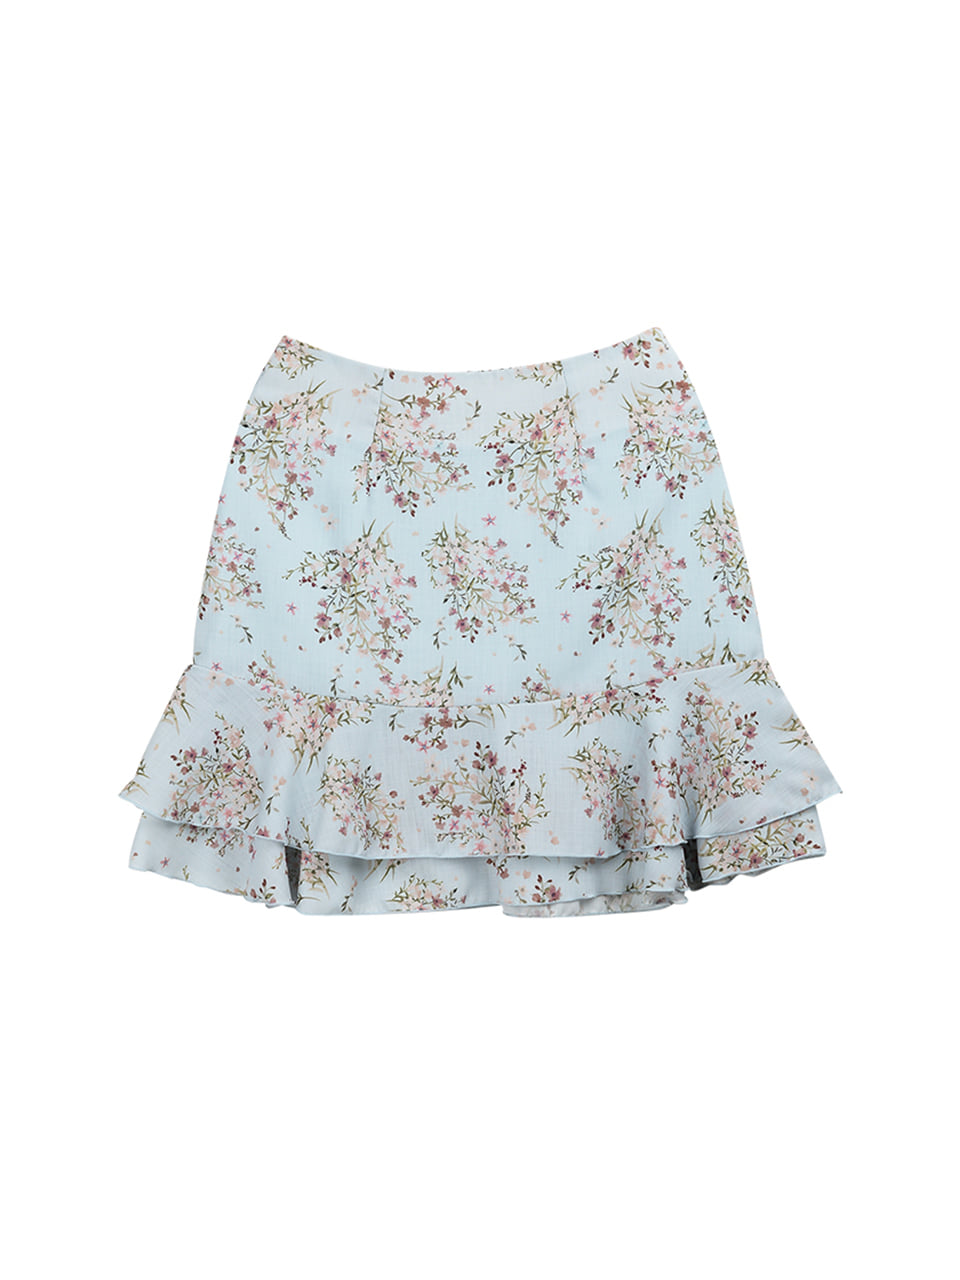 Flower frill layered skirt_skyblue